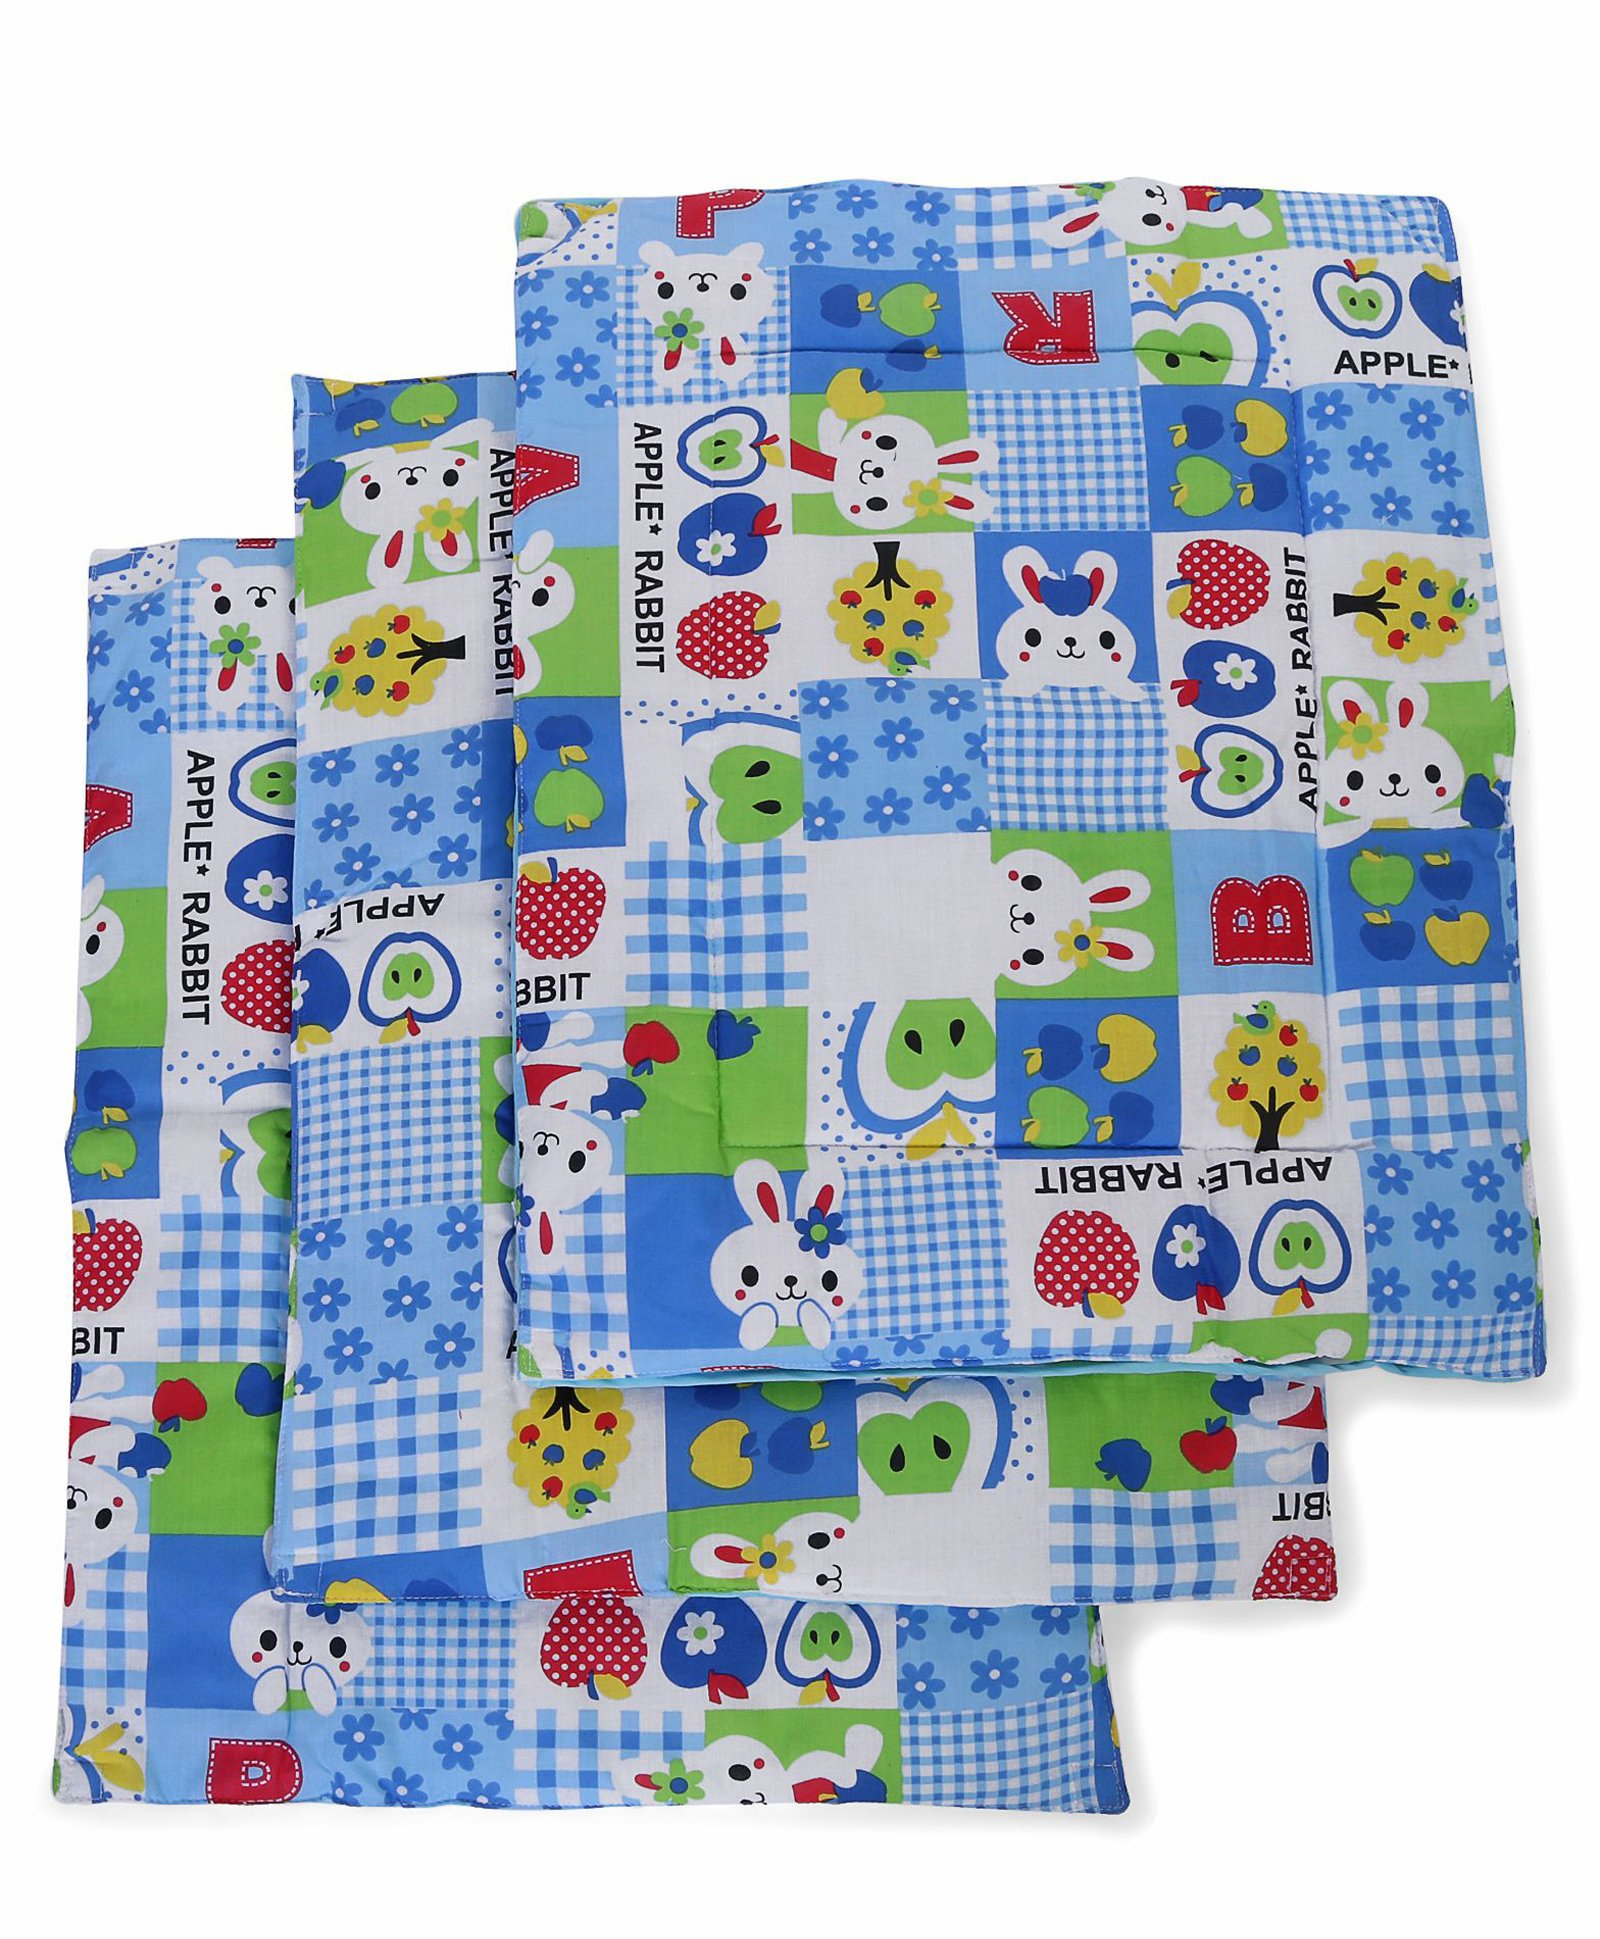 double durable waterproof playing educational kids best toys buy mats playmats mat safe non activity puzzle at toxin baby shop gym sided price